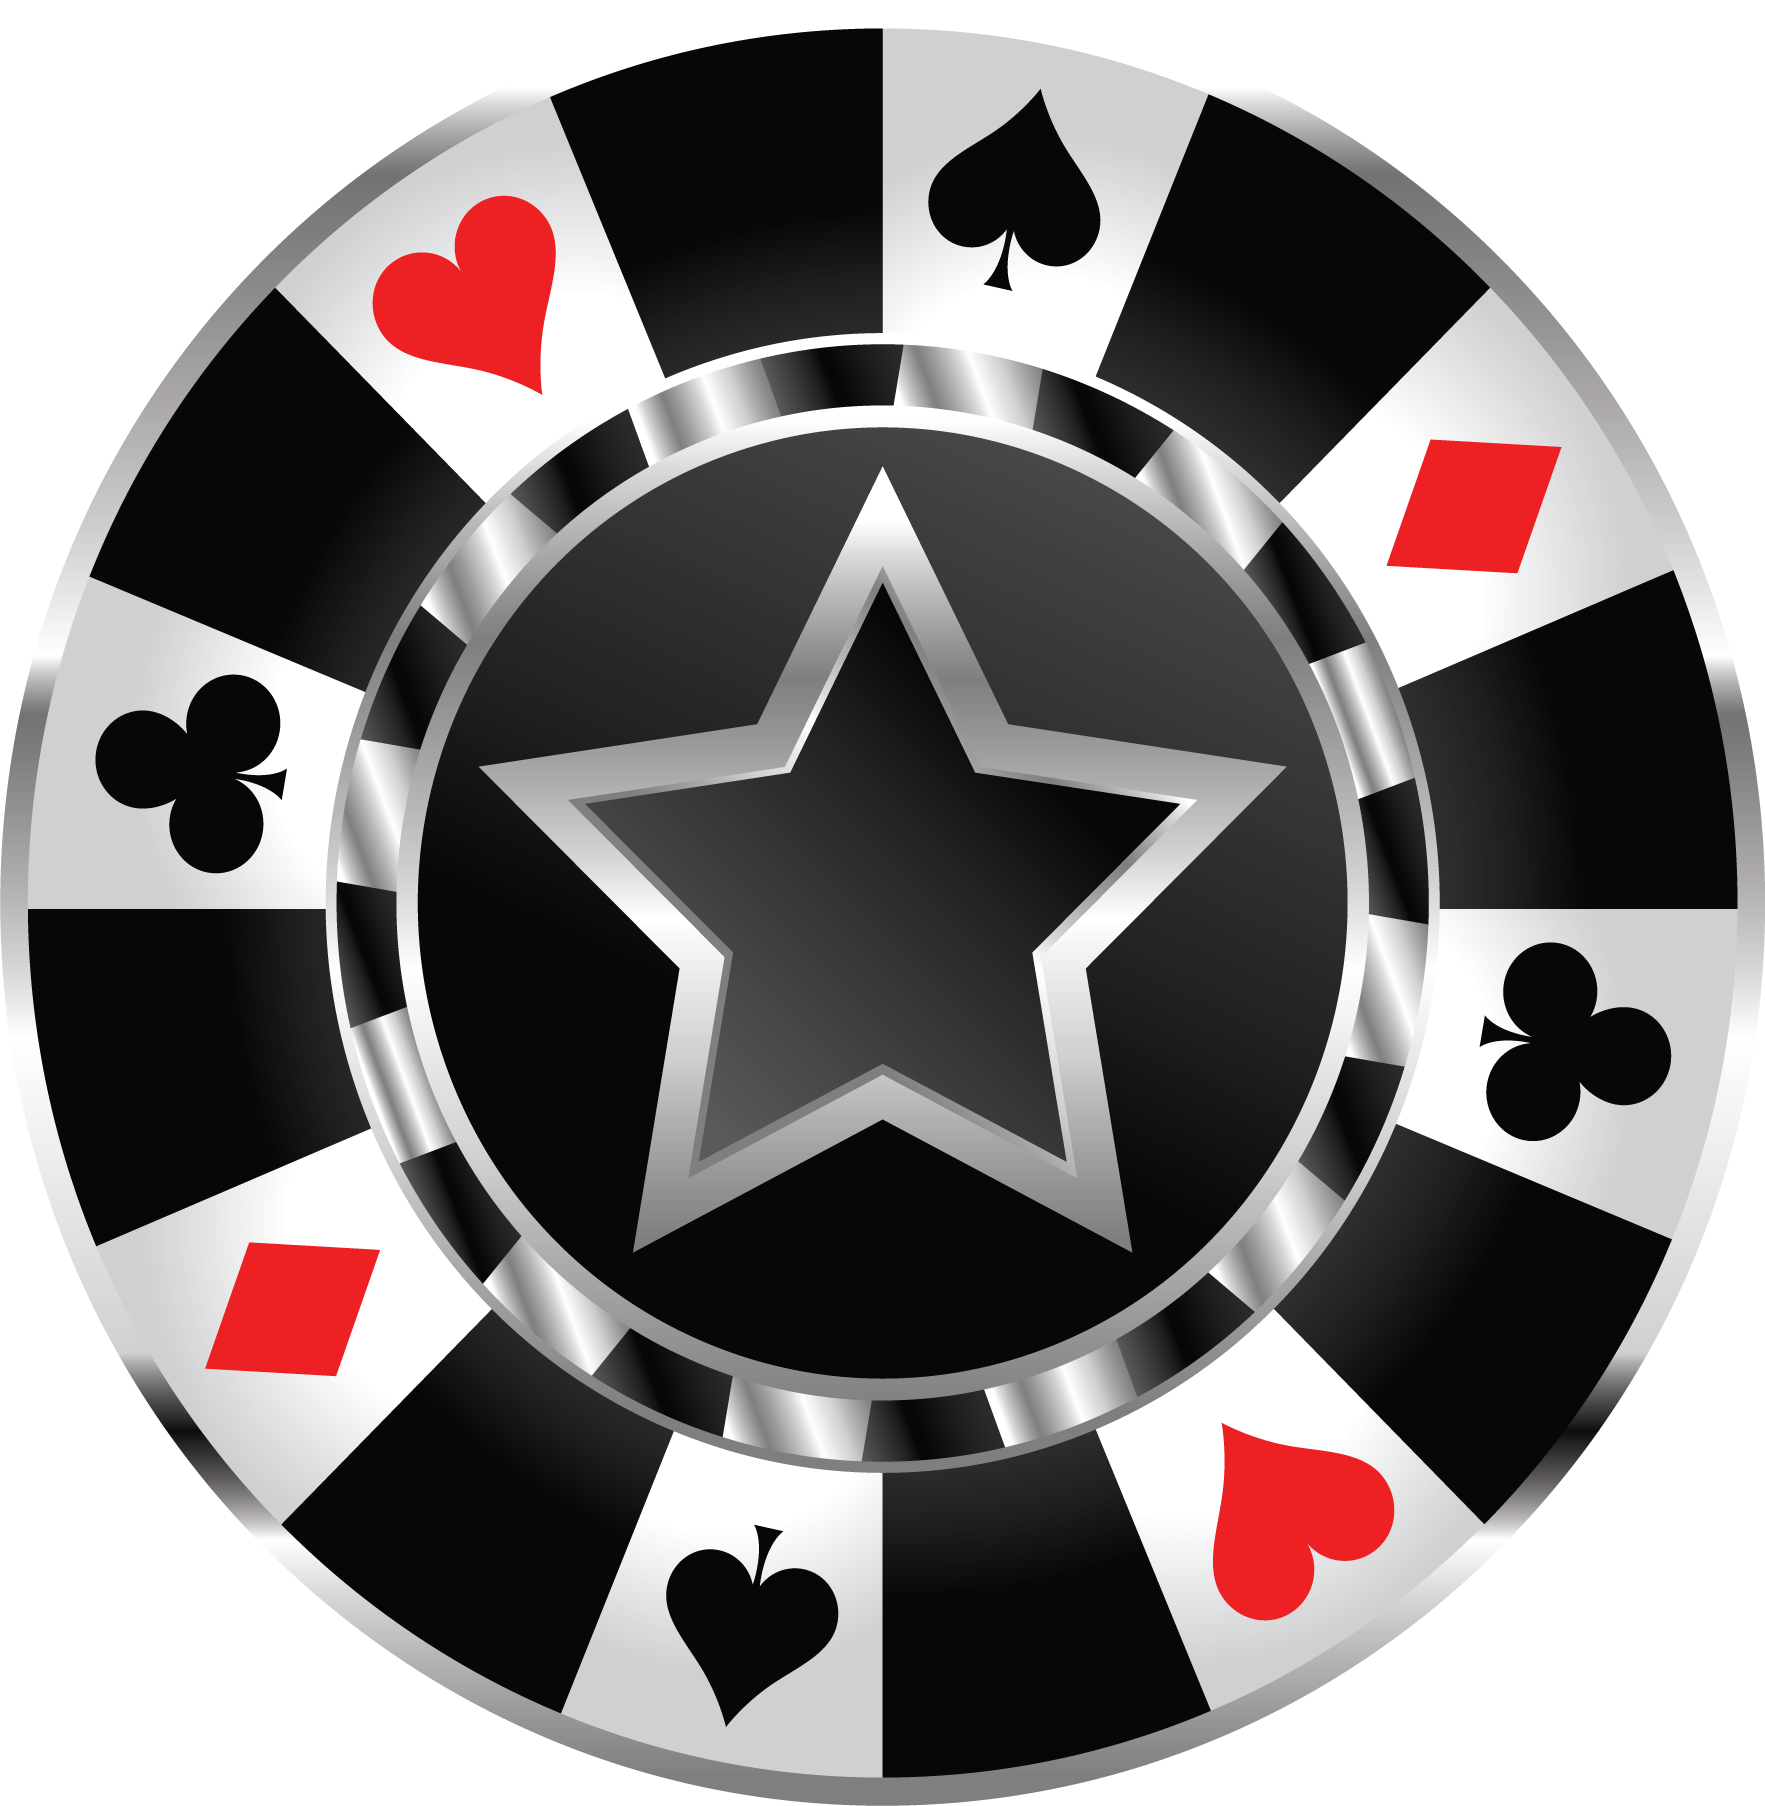 Download Poker Chips Png Image For Free